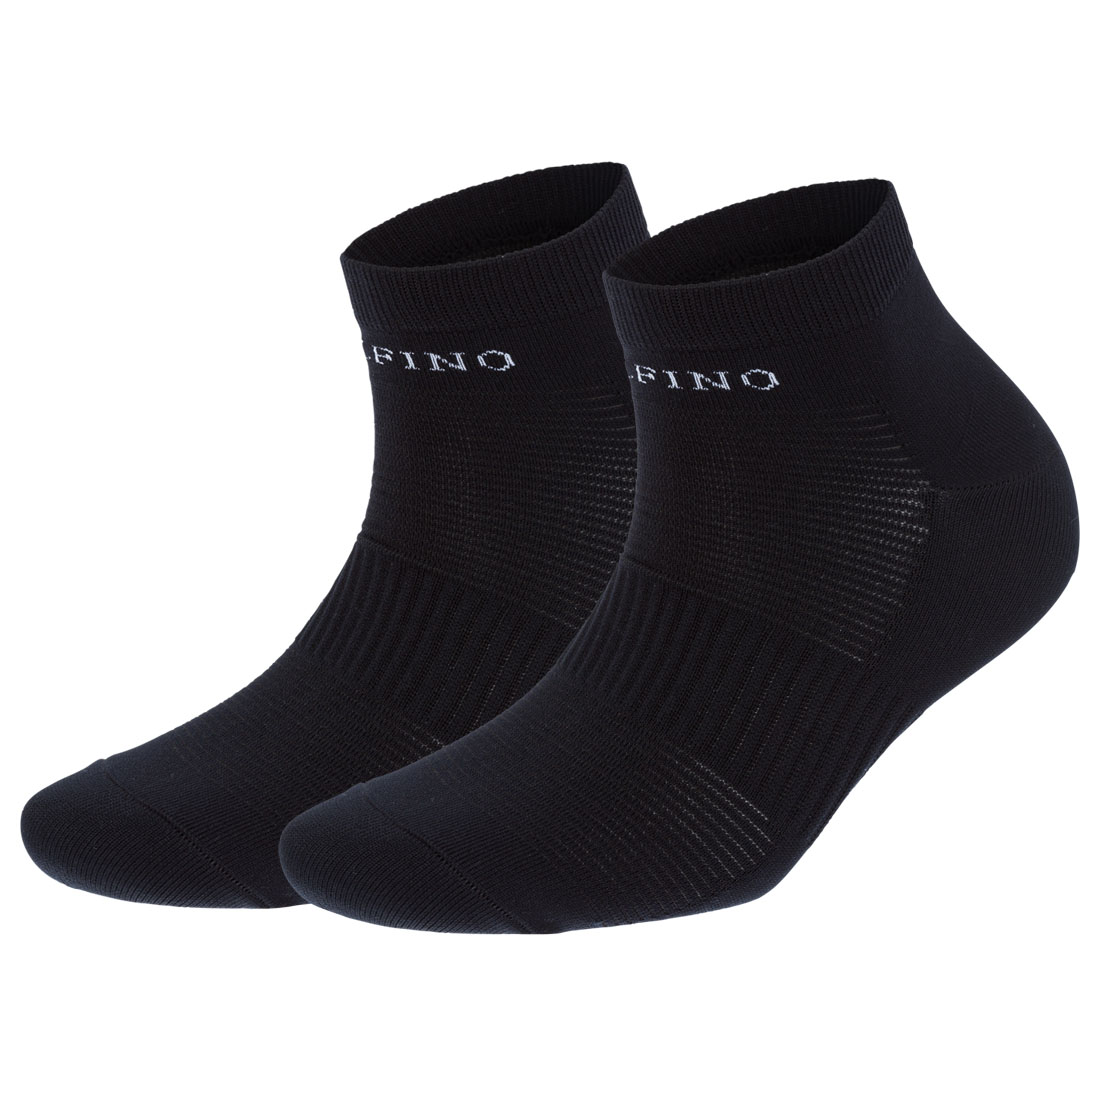 Men's Dry Comfort golf socks made from quick drying functional material